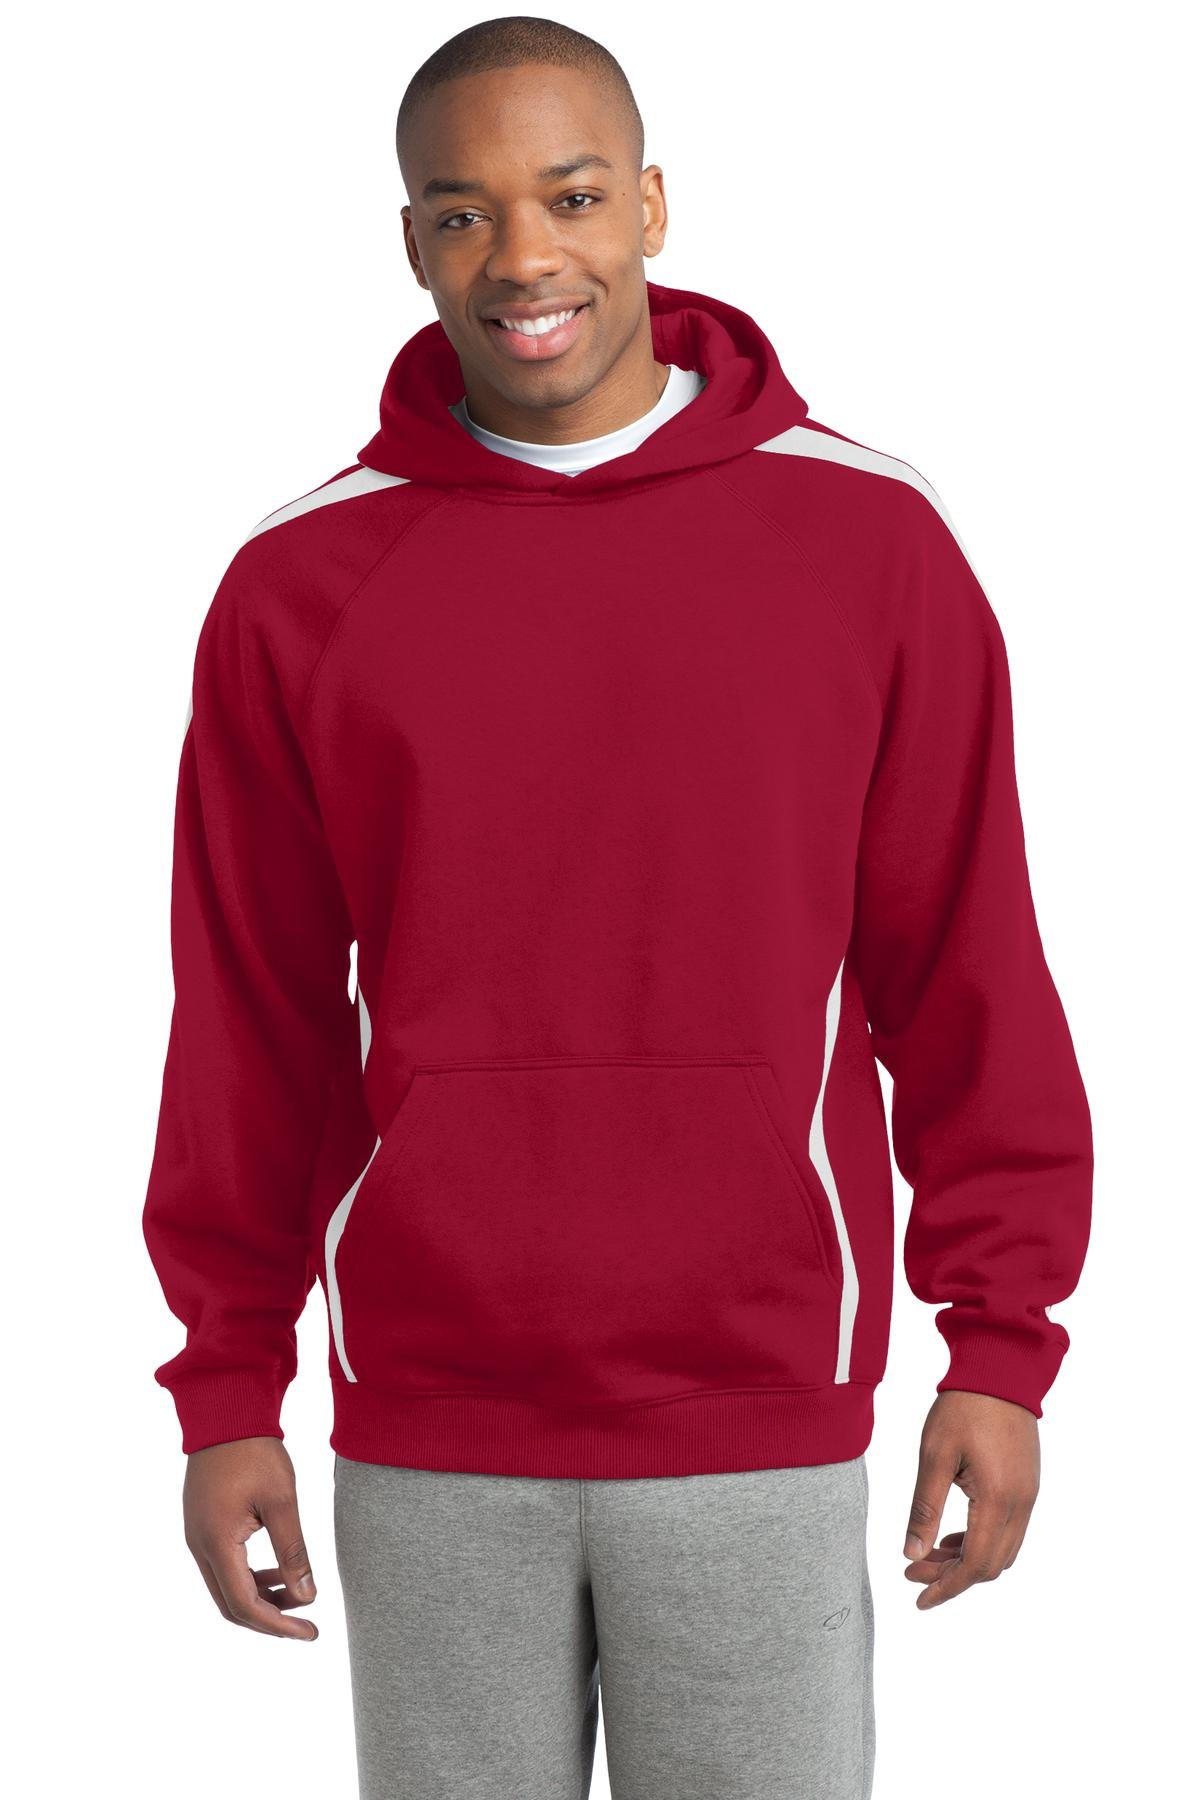 Sport-Tek Men's Sleeve Stripe Pullover Hooded Sweatshirt 4XL True Red/White by Sport-Tek